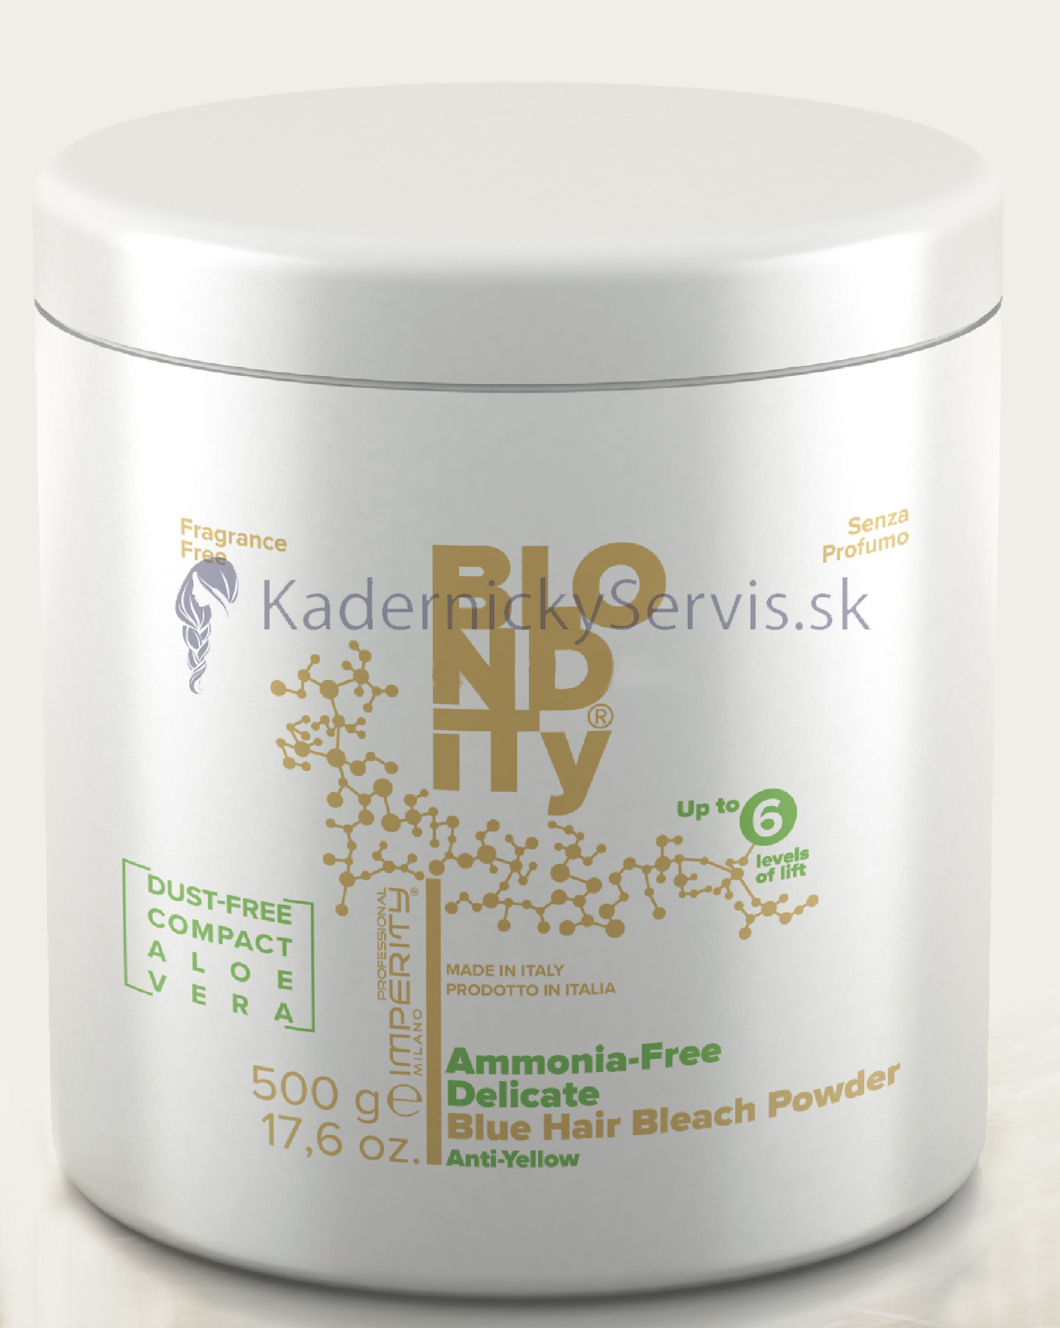 ​Imperity Blondity Ammoniak Fre Blue Hair Bleach Powder Aloe Vera - modrý melírovací prášek s aloe vera, bez amoniaku, 500 g